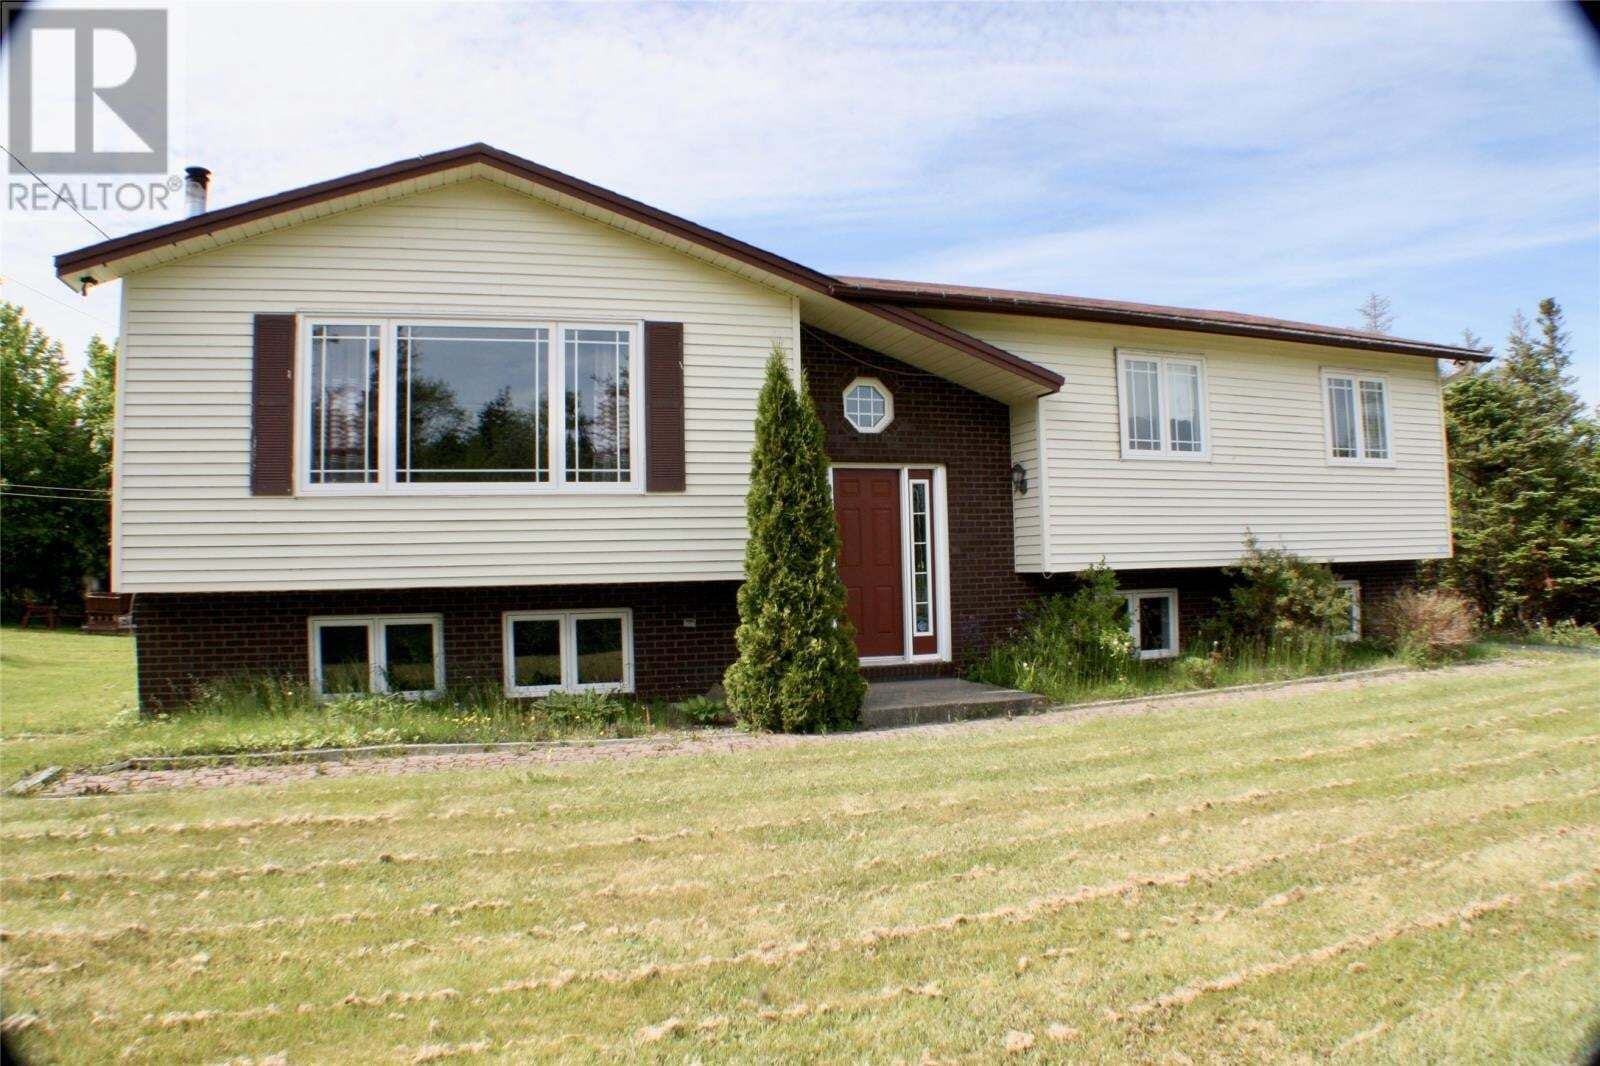 House for sale at 203 Tuckers Hill Rd Portugal Cove-st. Philip's Newfoundland - MLS: 1222038